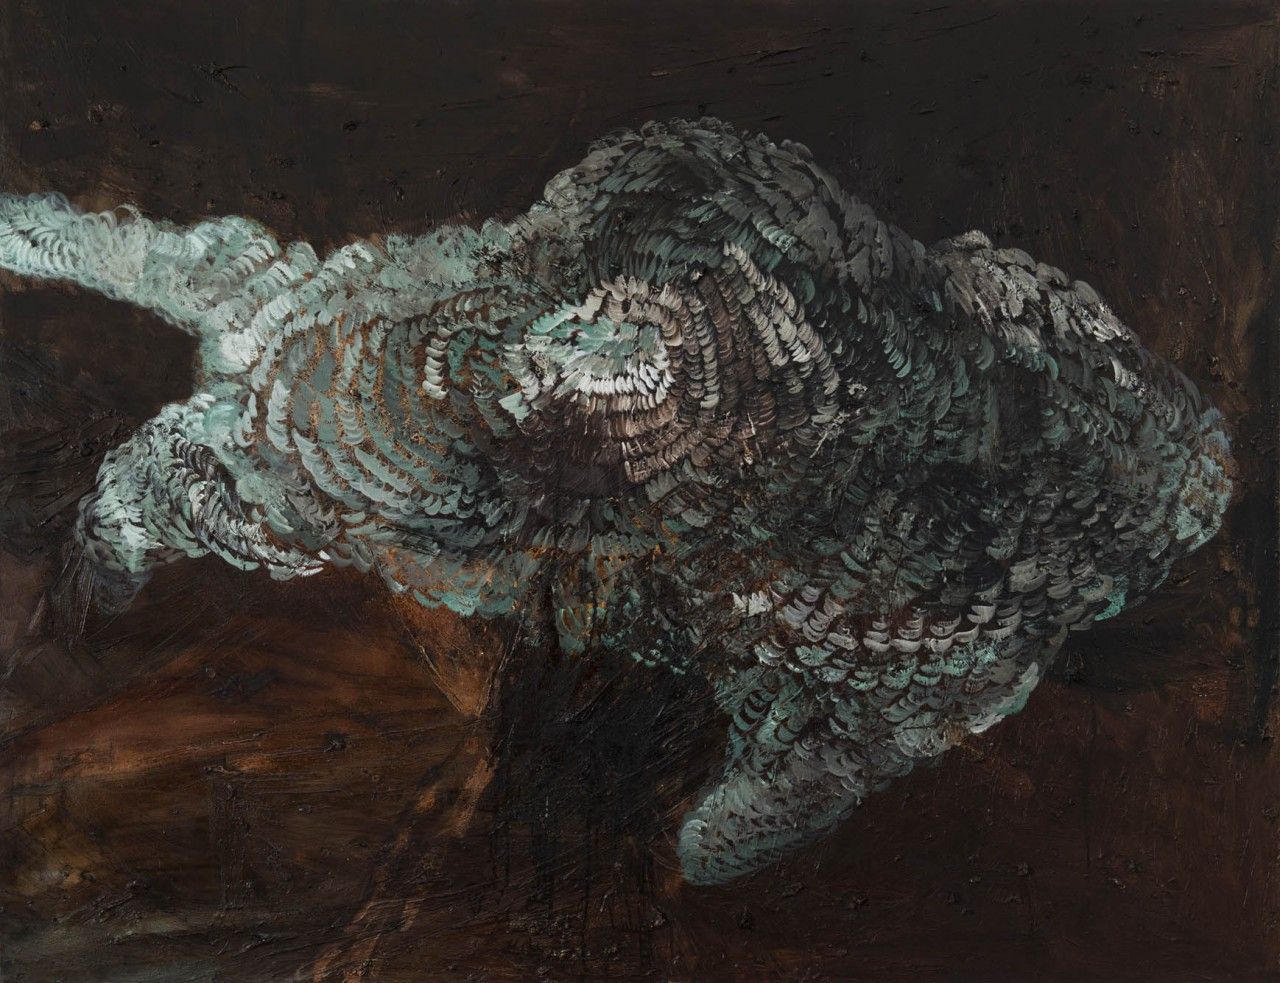 Volcano 8, oil + tar on canvas, 152 x 194 cm, 2014